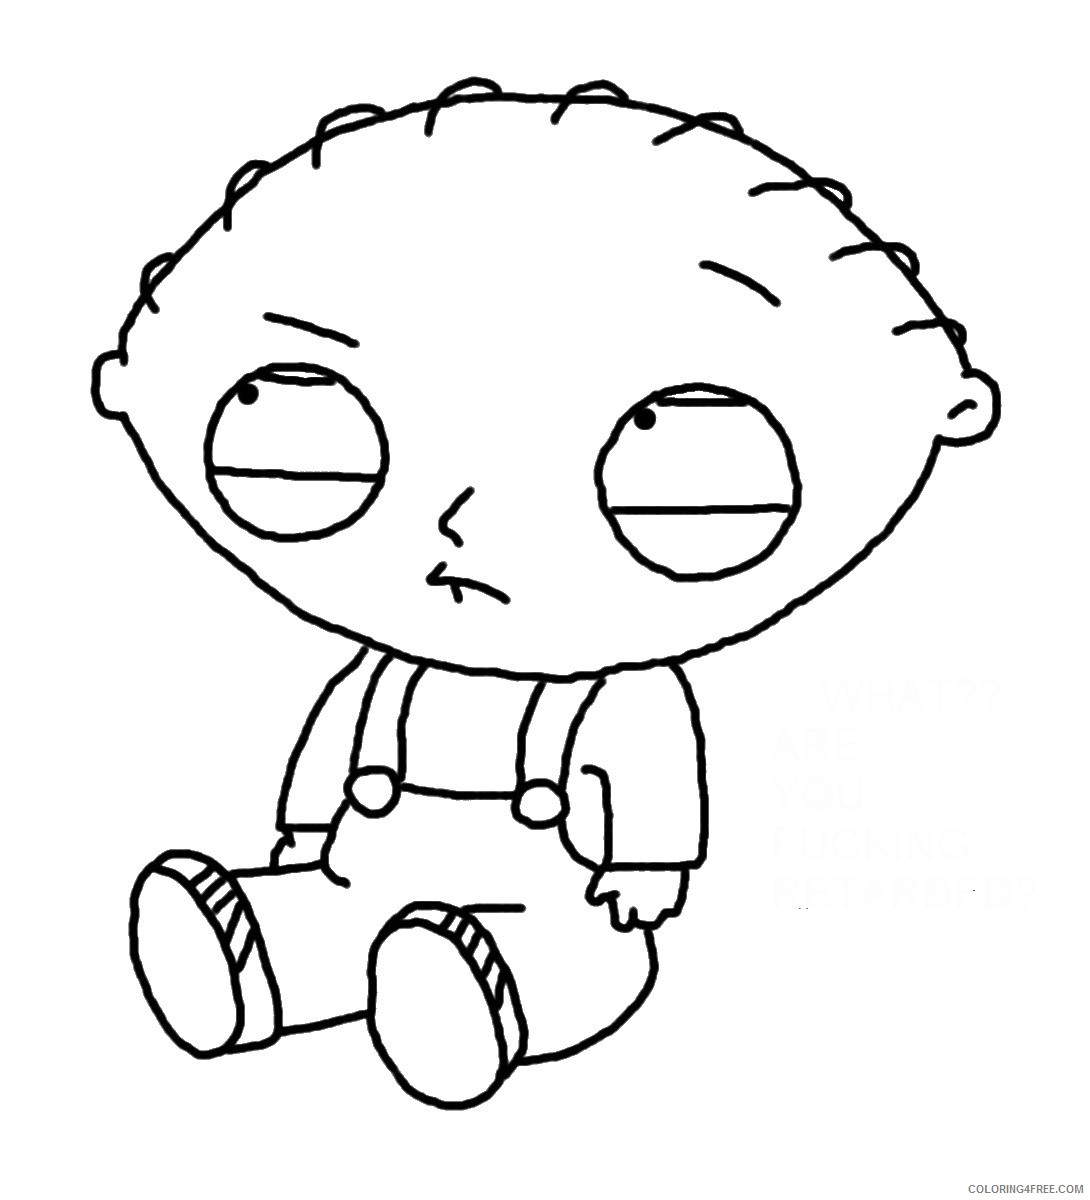 Stewie Griffin Family Guy Coloring Pages Coloring4free Coloring4free Com